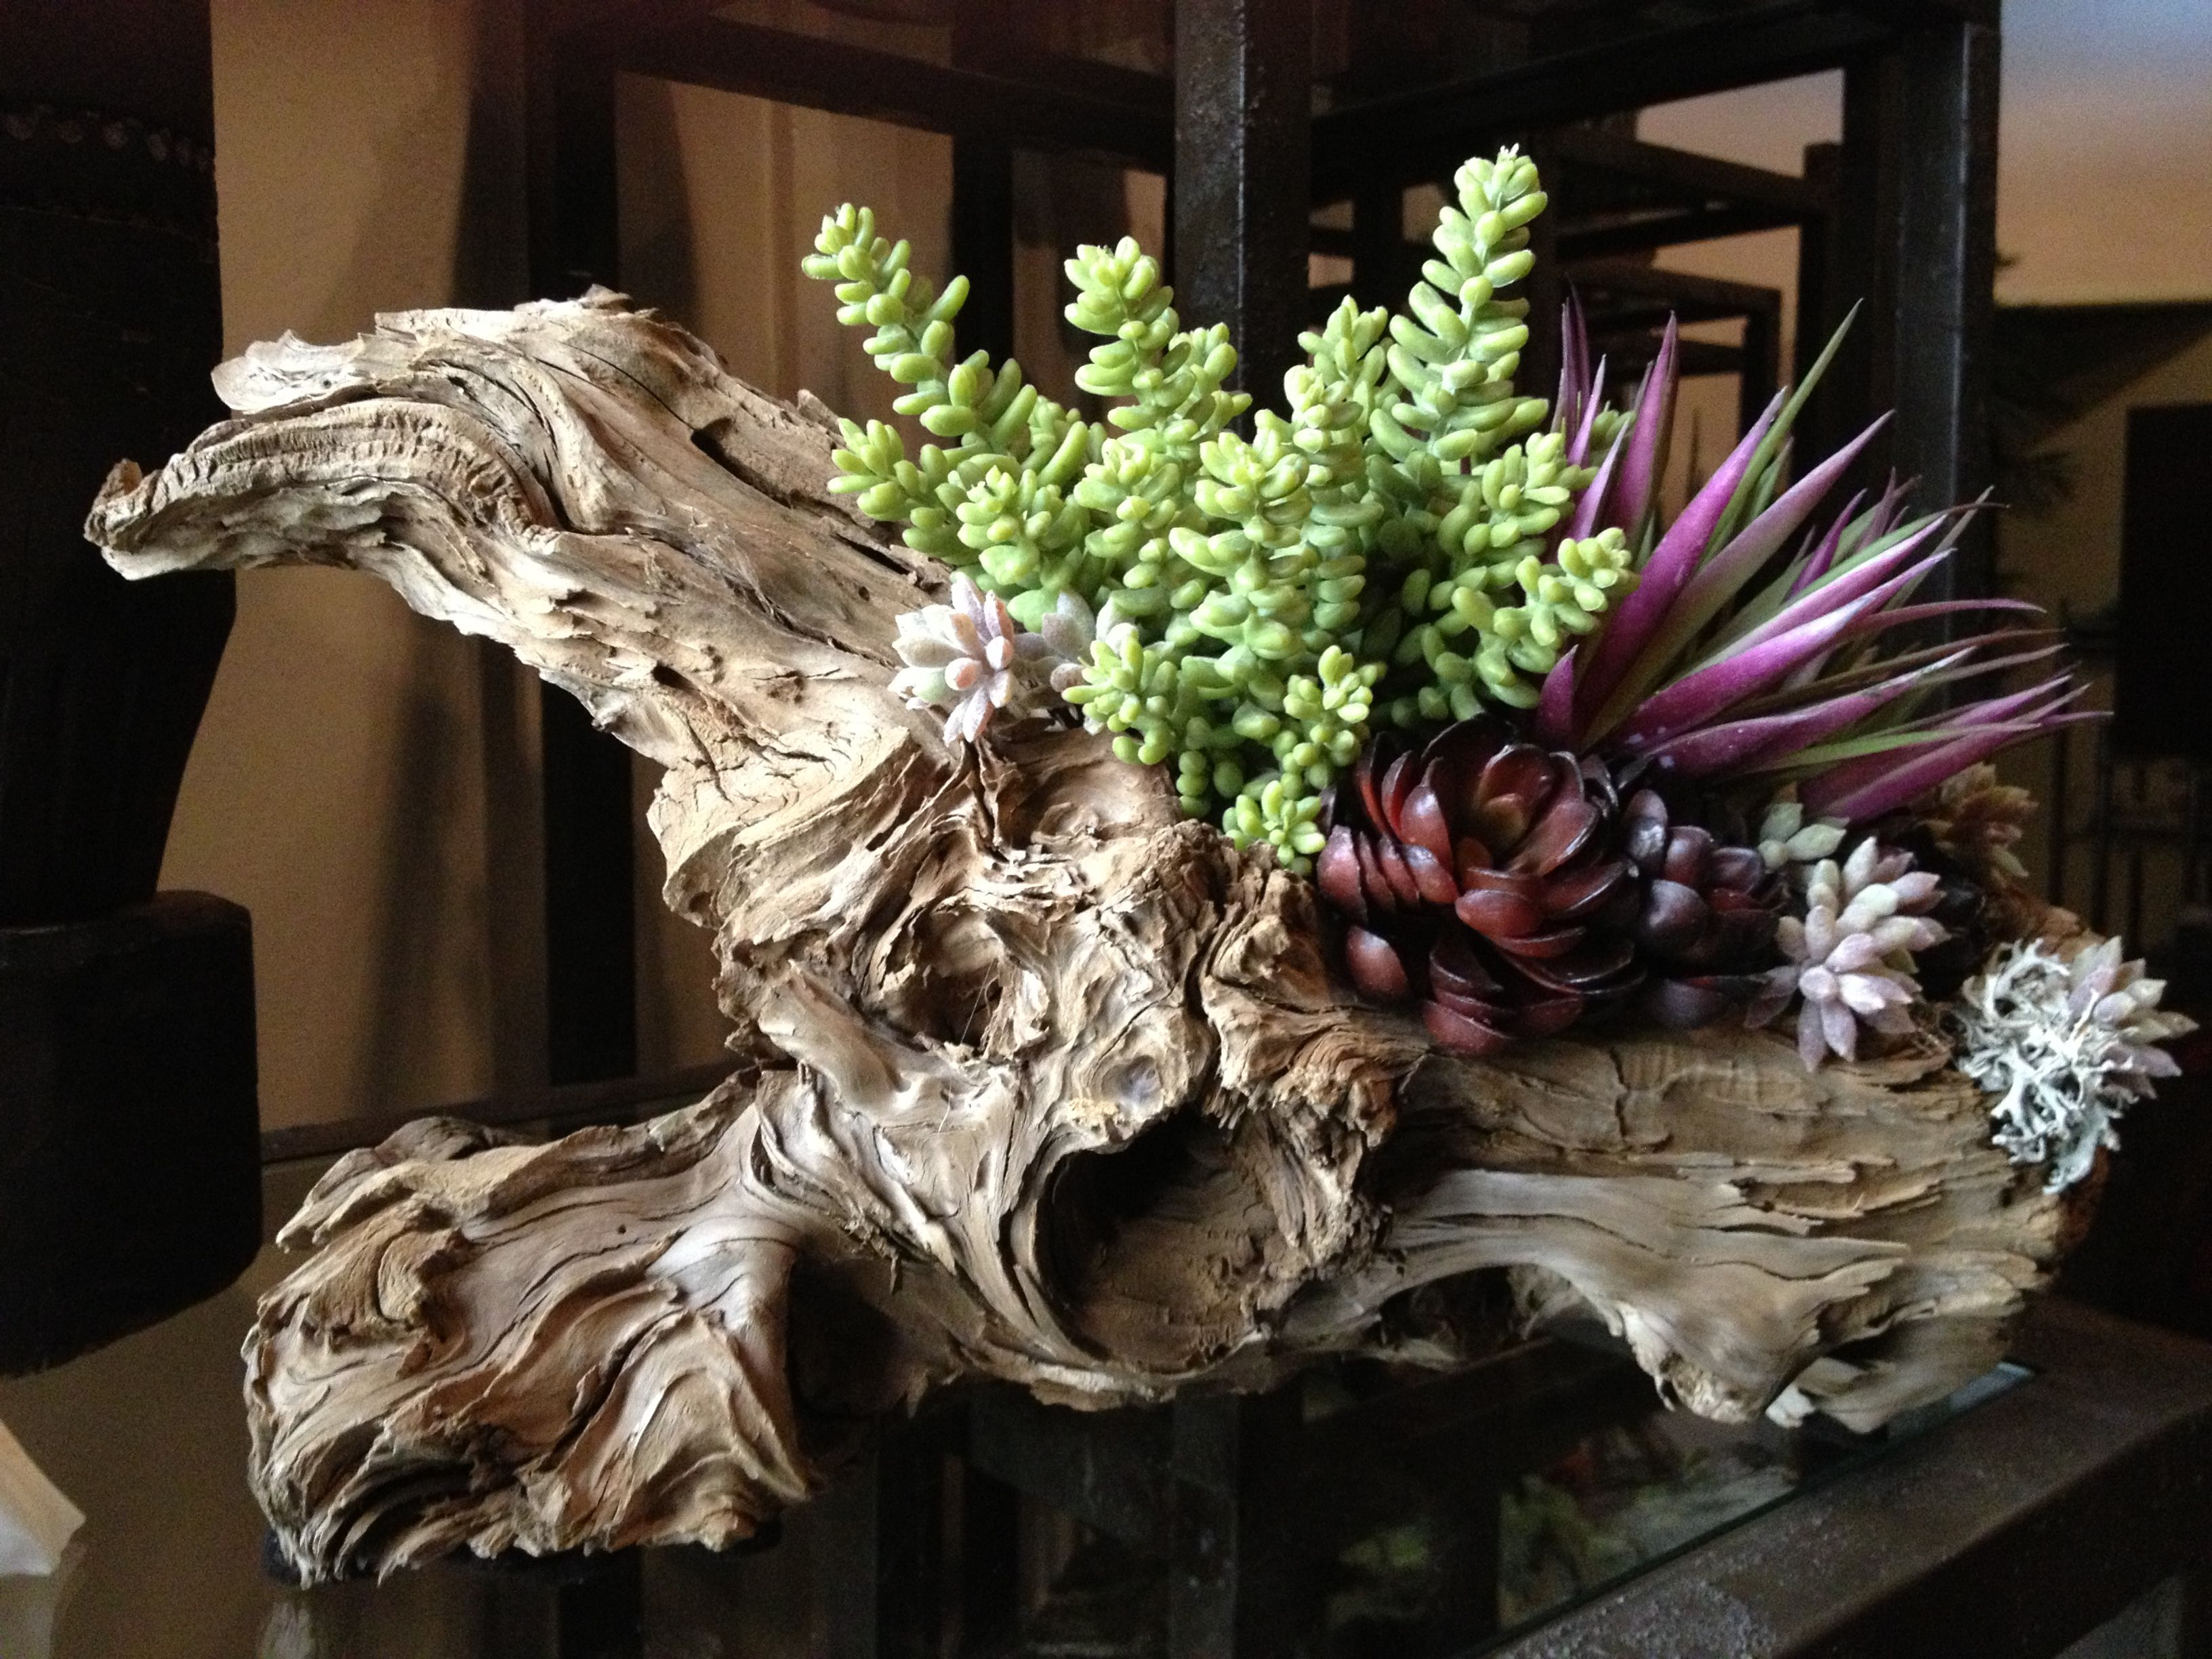 Salon De Jardin Bois Flotté Driftwood Arrangement Beautiful Divers Bois Flotté